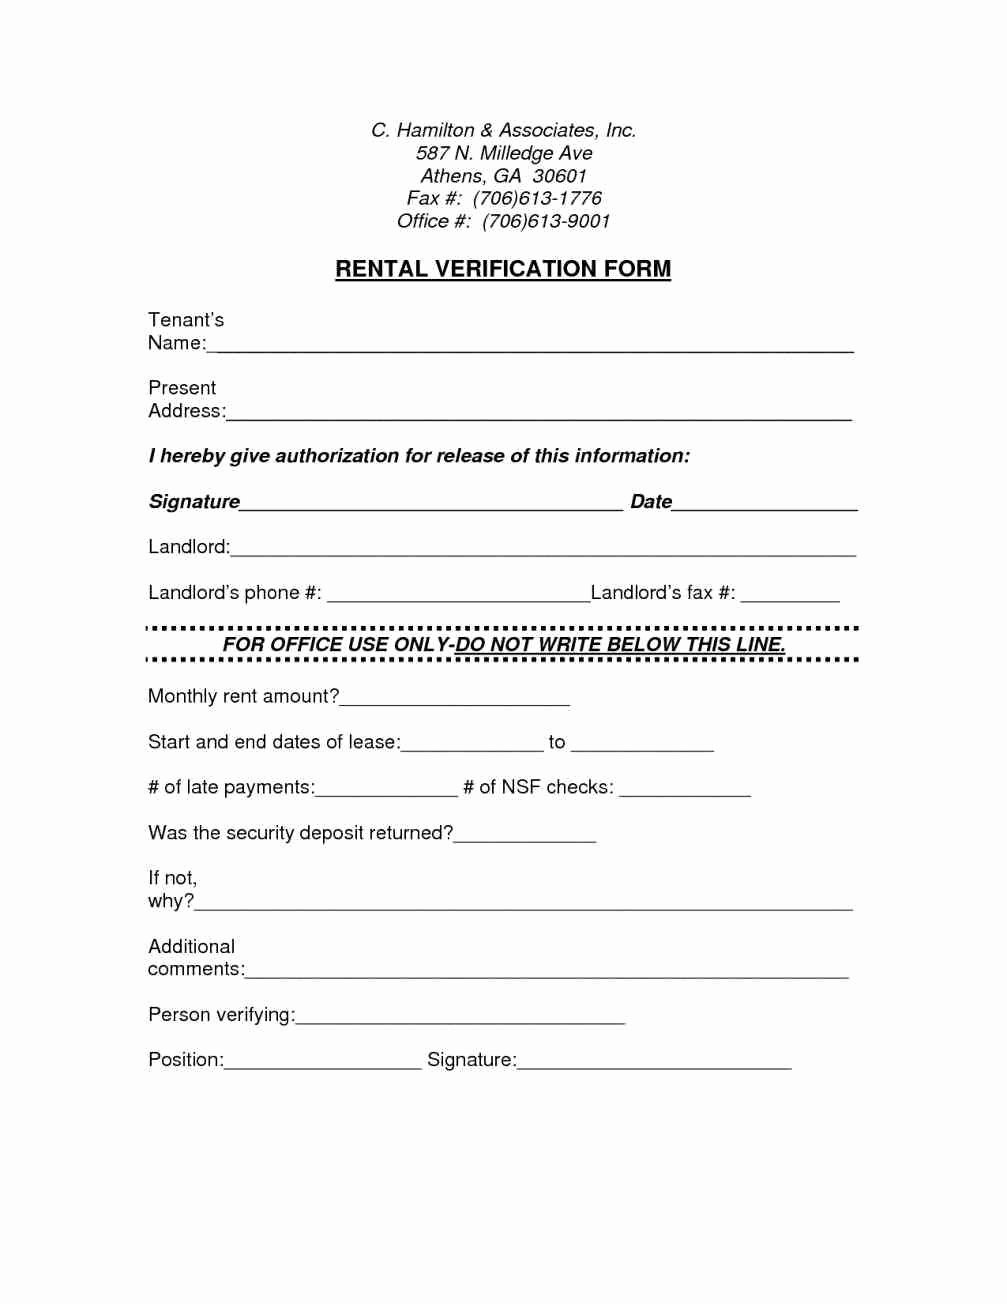 Sample Reference Check form Beautiful Personal Reference Check form Template Sampletemplatez